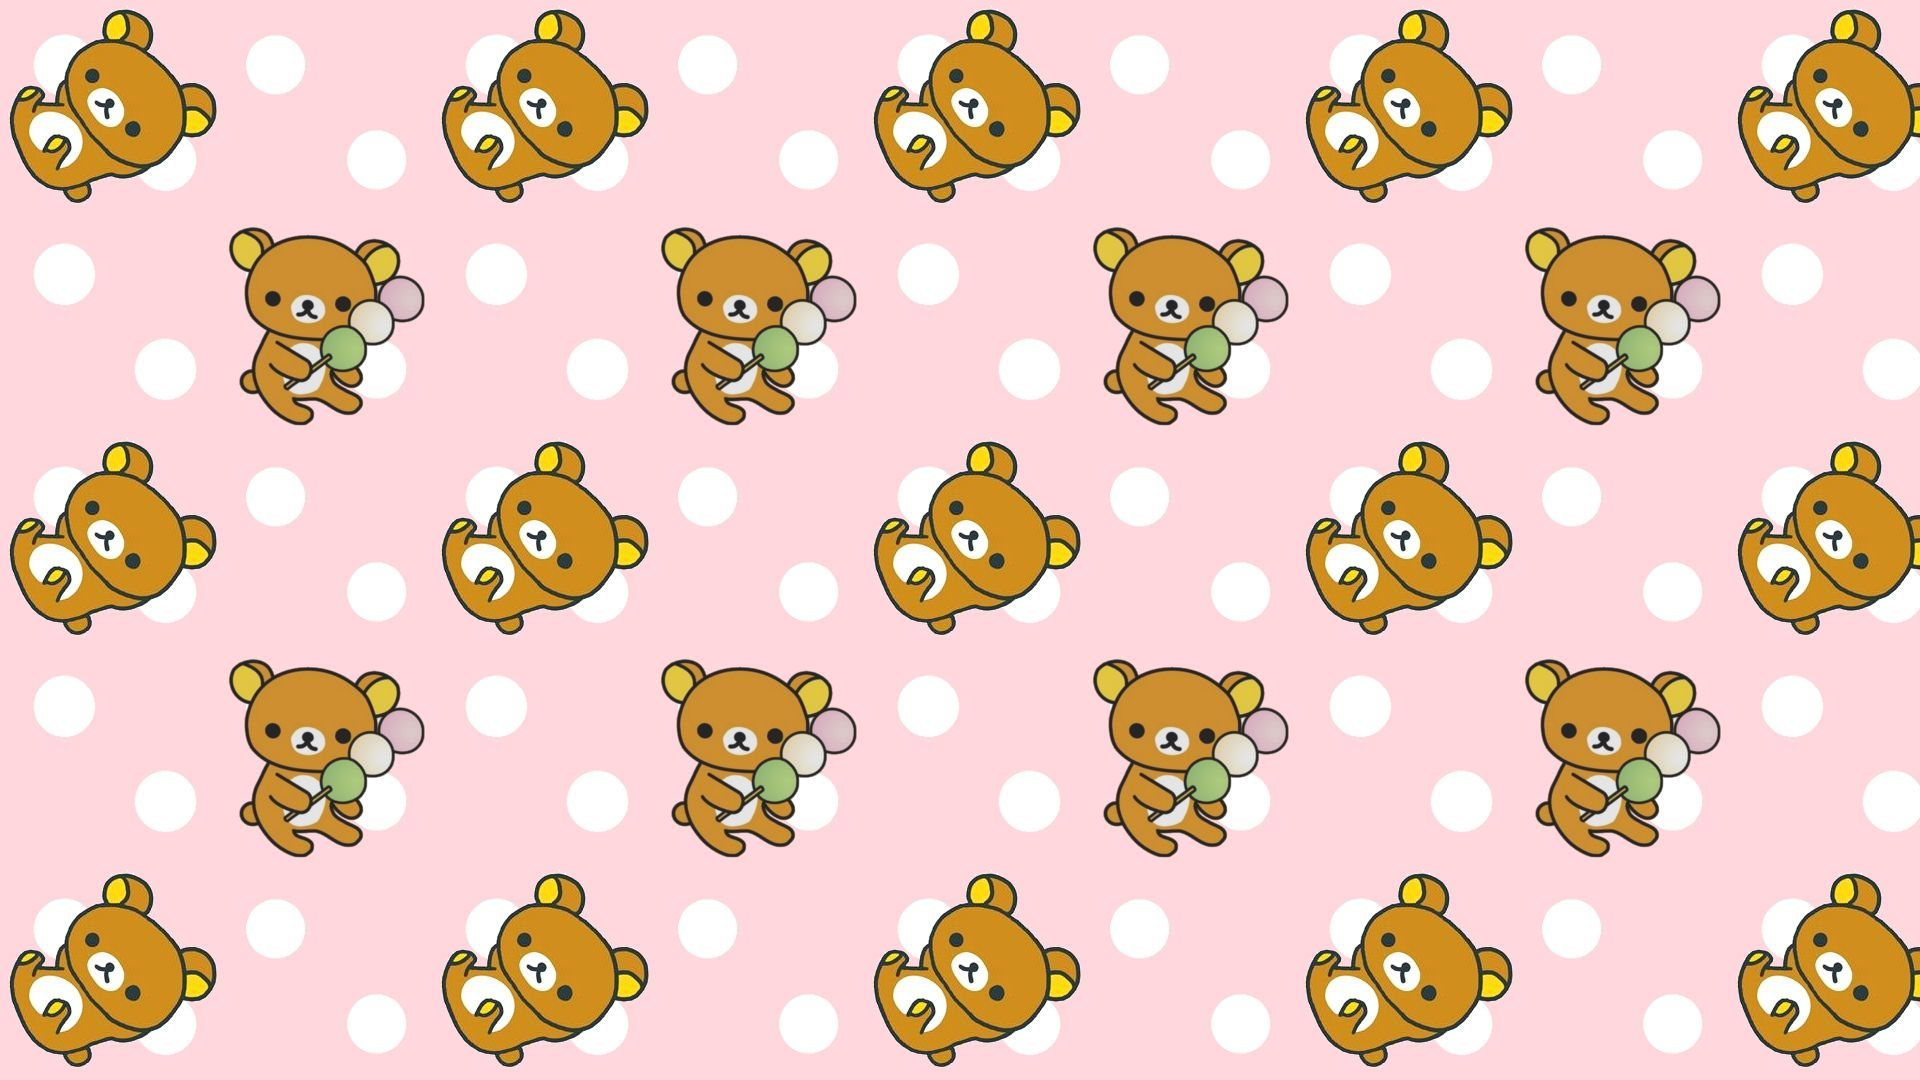 Cute pattern wallpaper page 2 of 3 downloadwallpaper image result for cute patterns wallpaper wp3407311 voltagebd Image collections